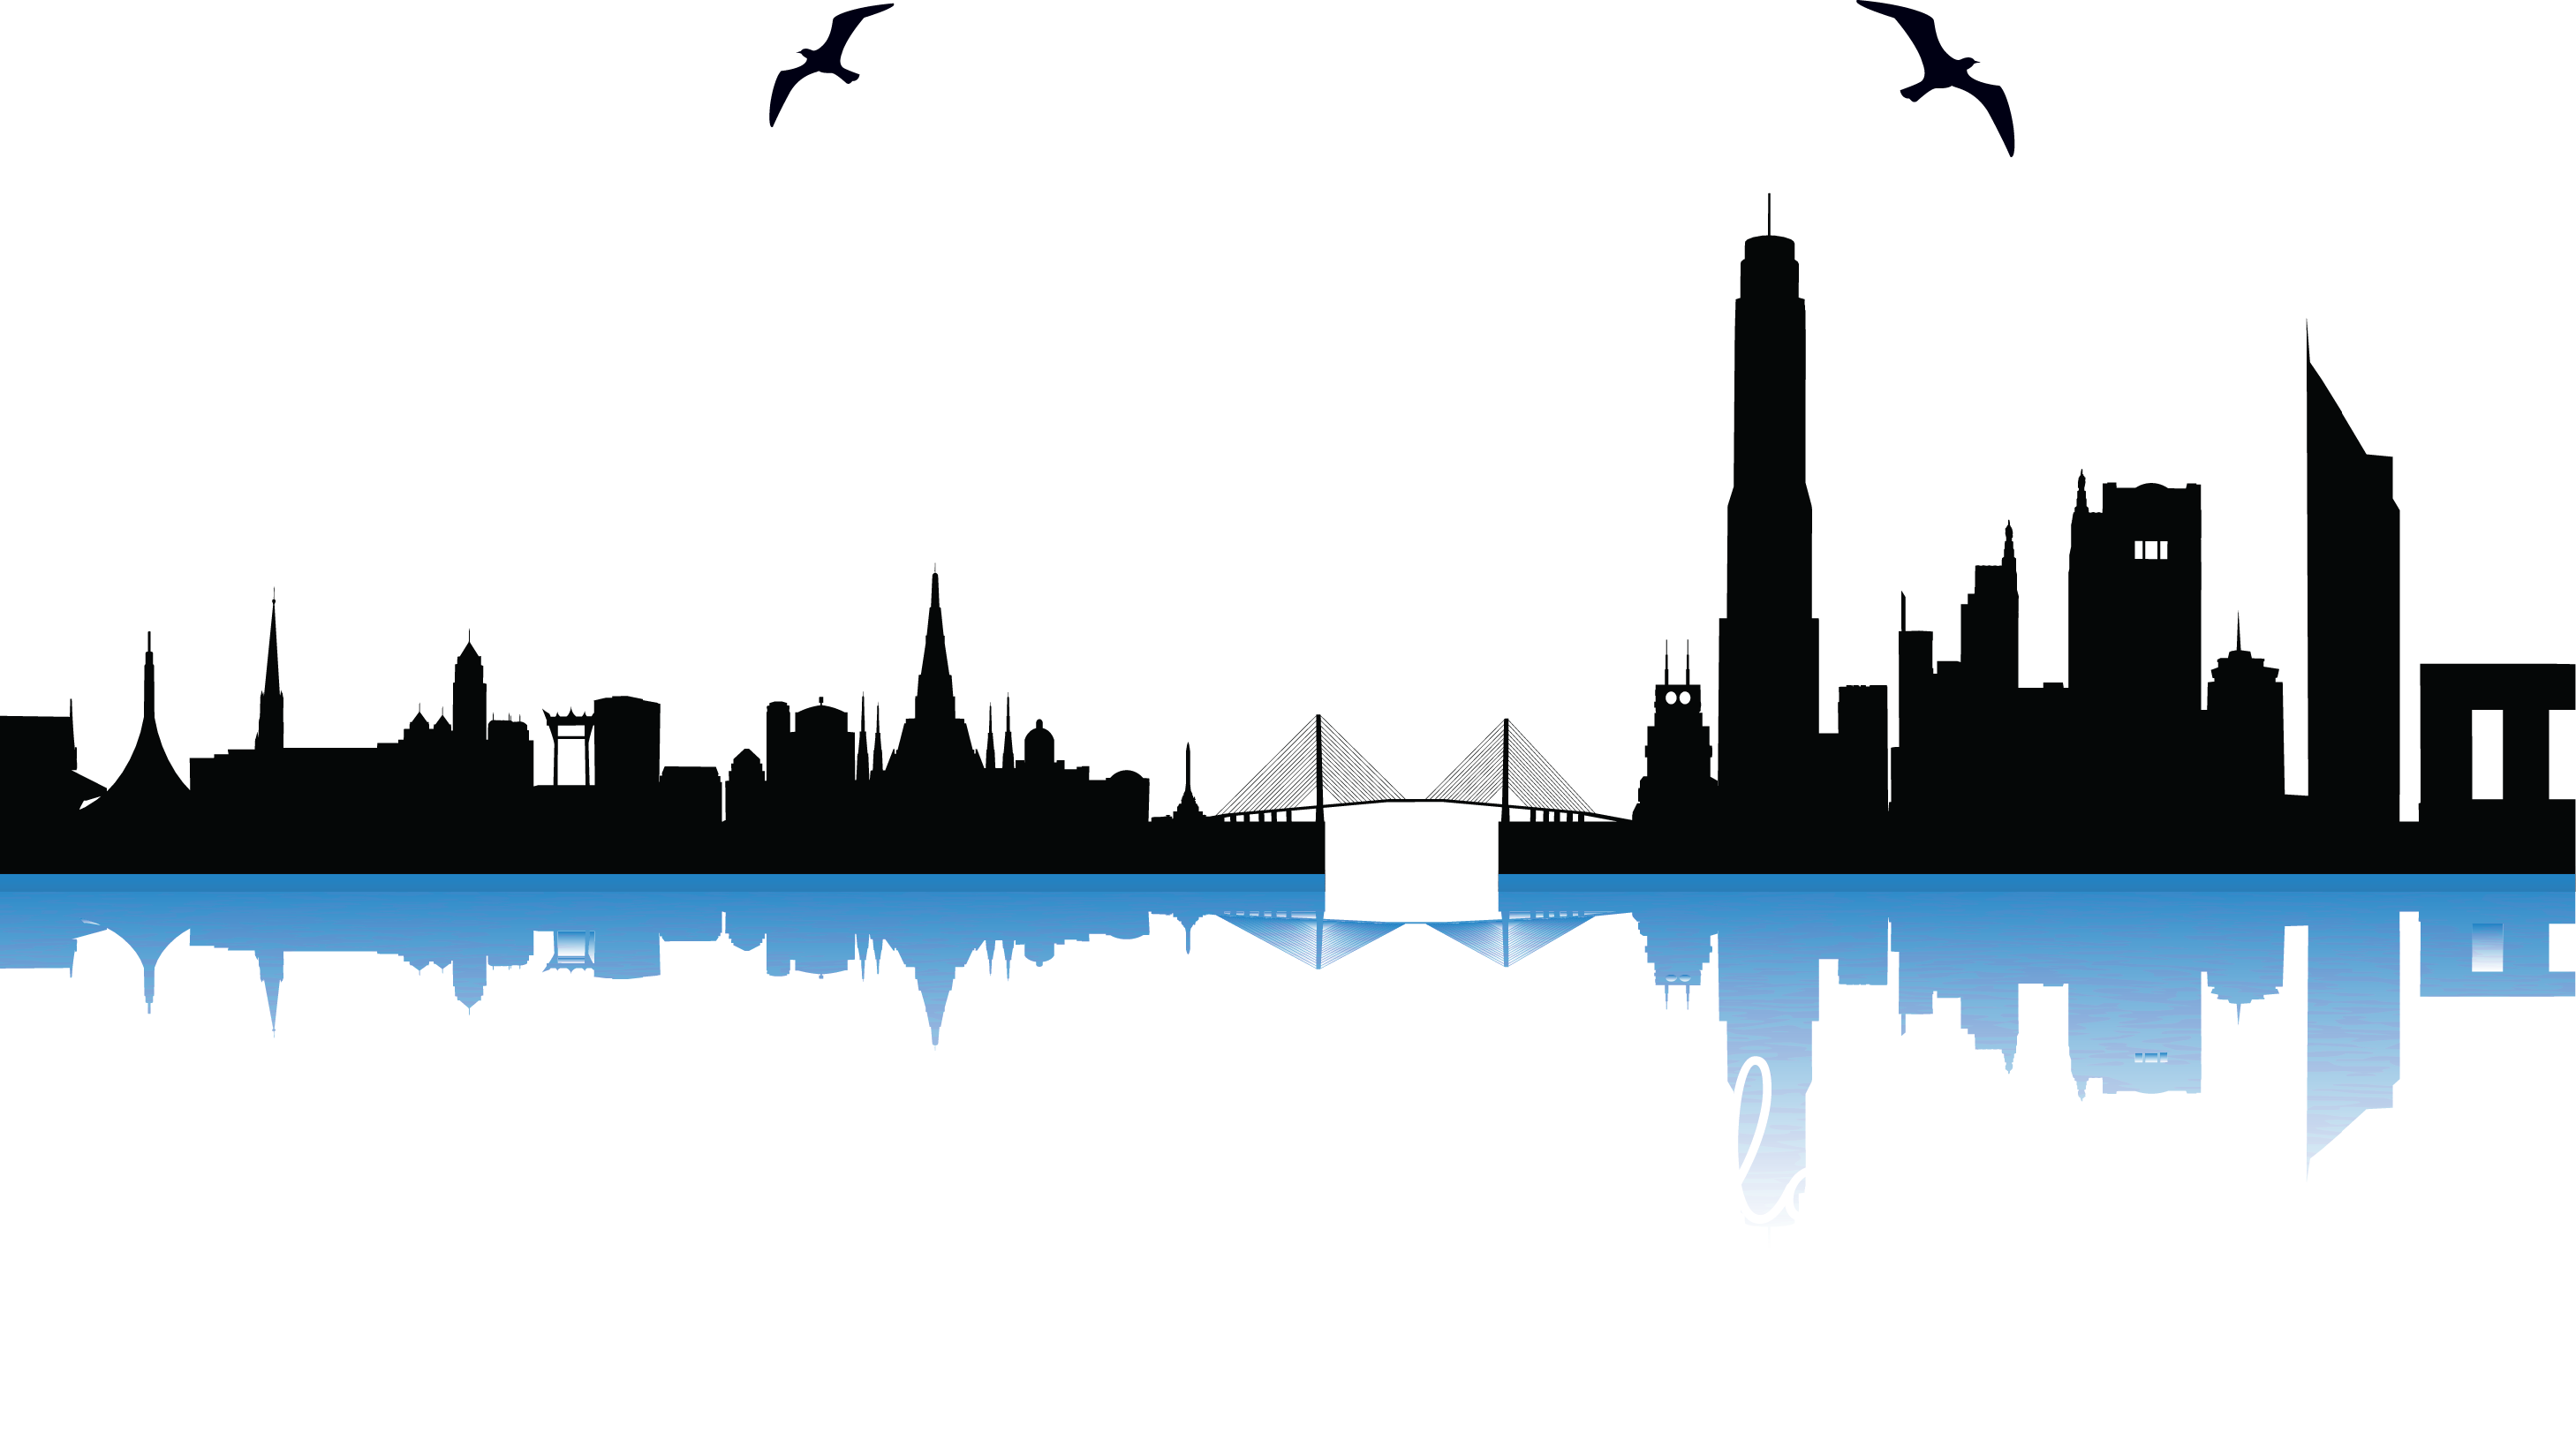 City Silhouette Vector Free